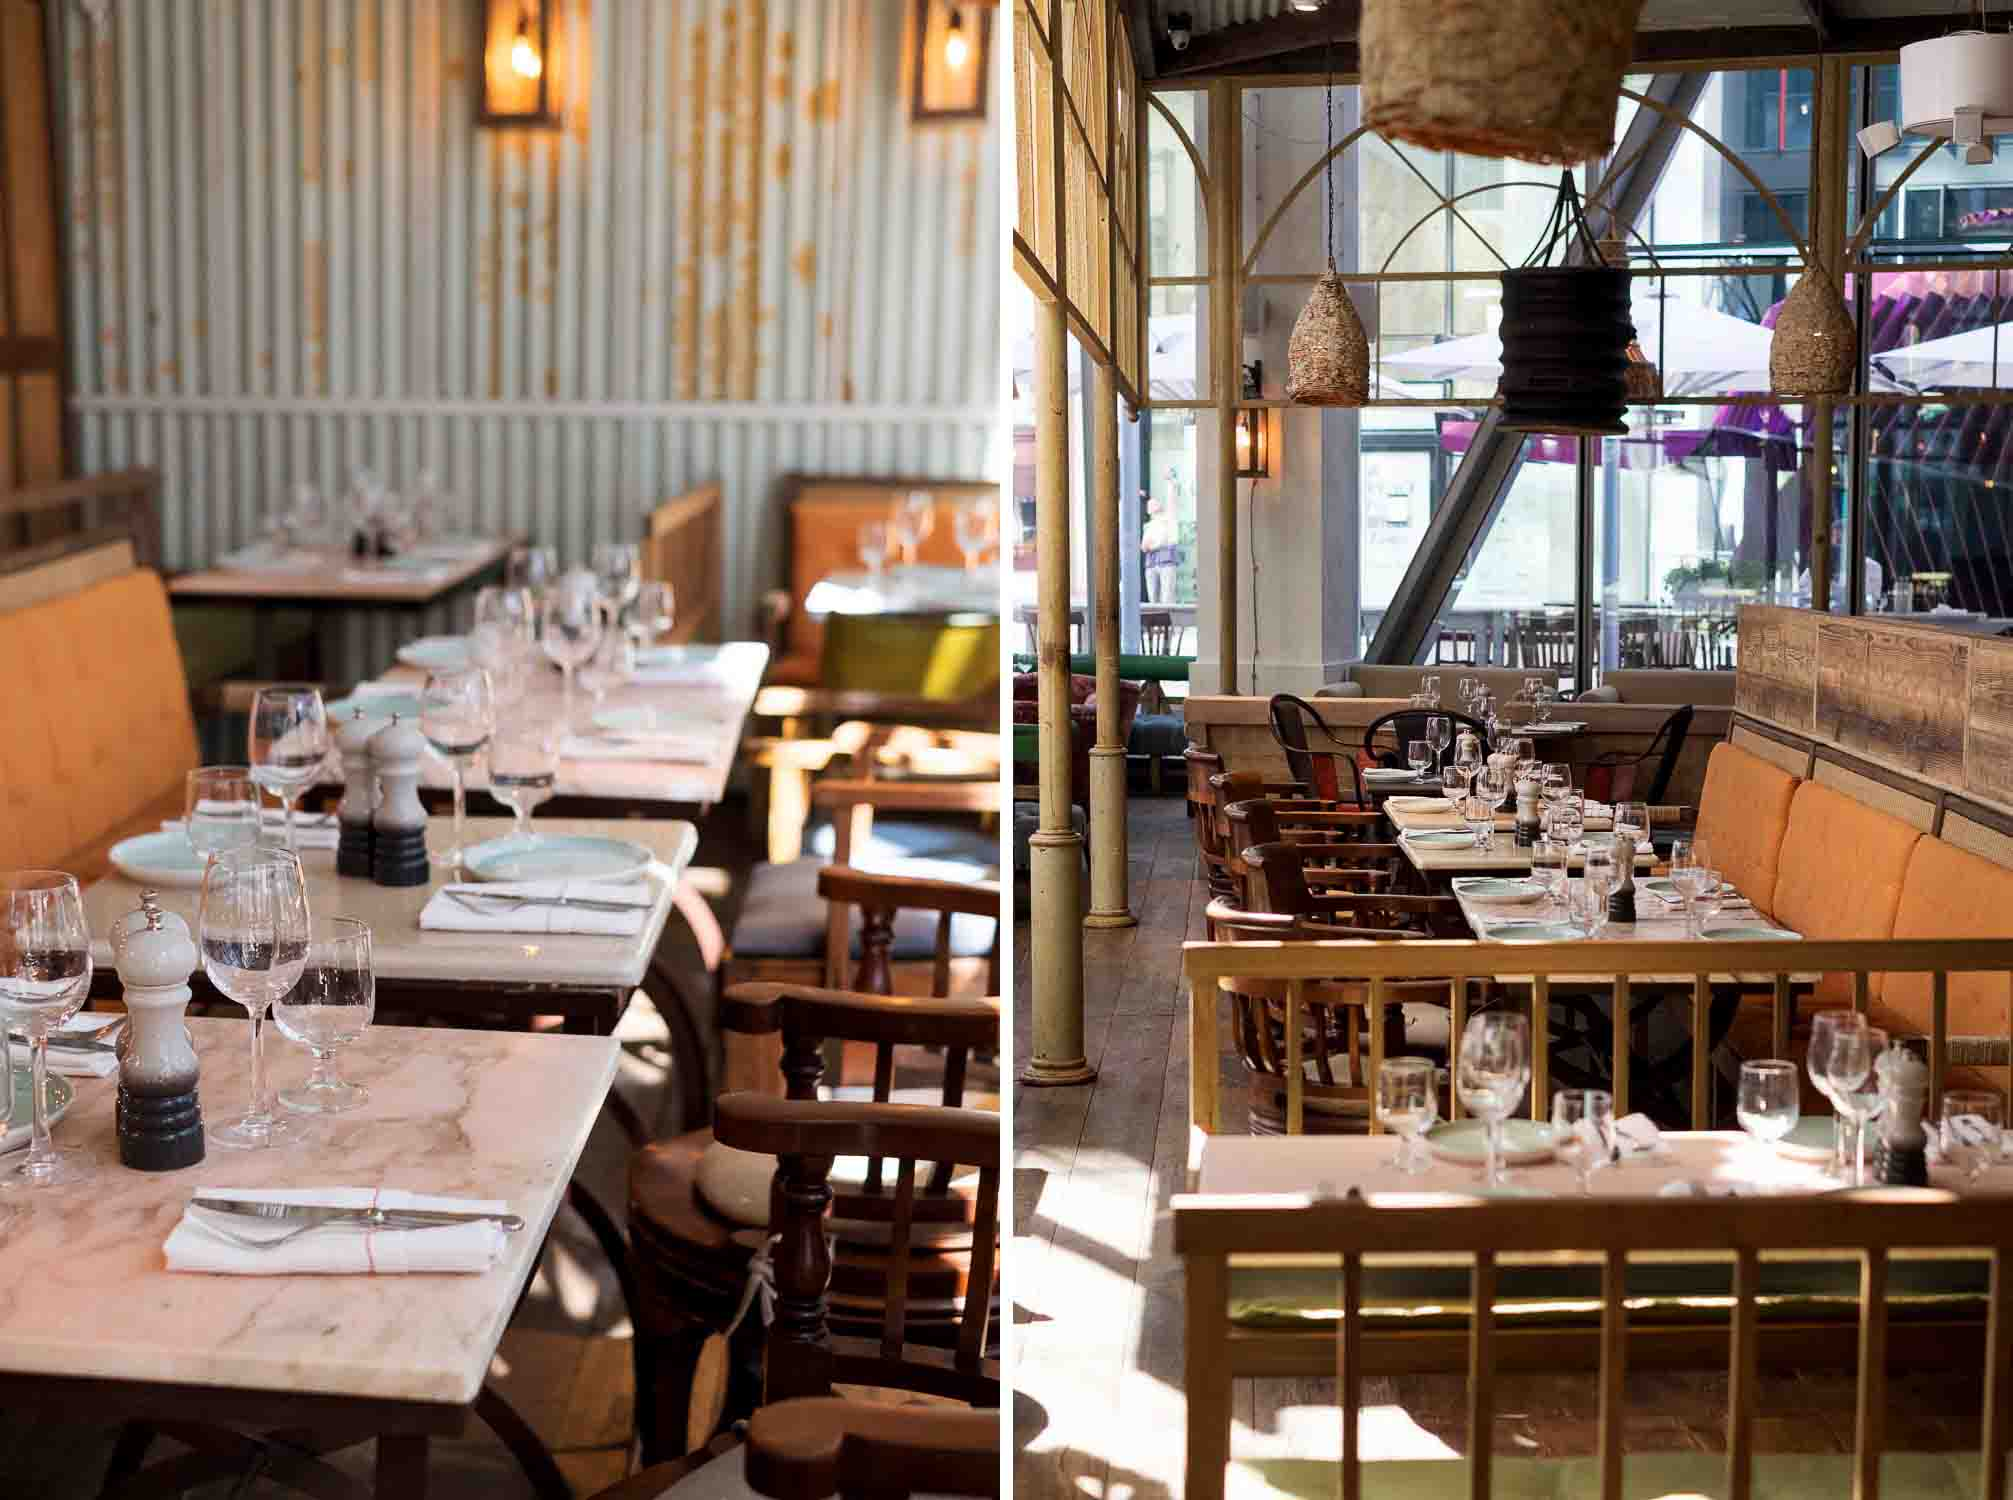 Rail House Café is a modern bar and brasserie - sister restaurant to Riding House Café- offering an international food menu in a relaxed and comfortable setting in Nova, Victoria